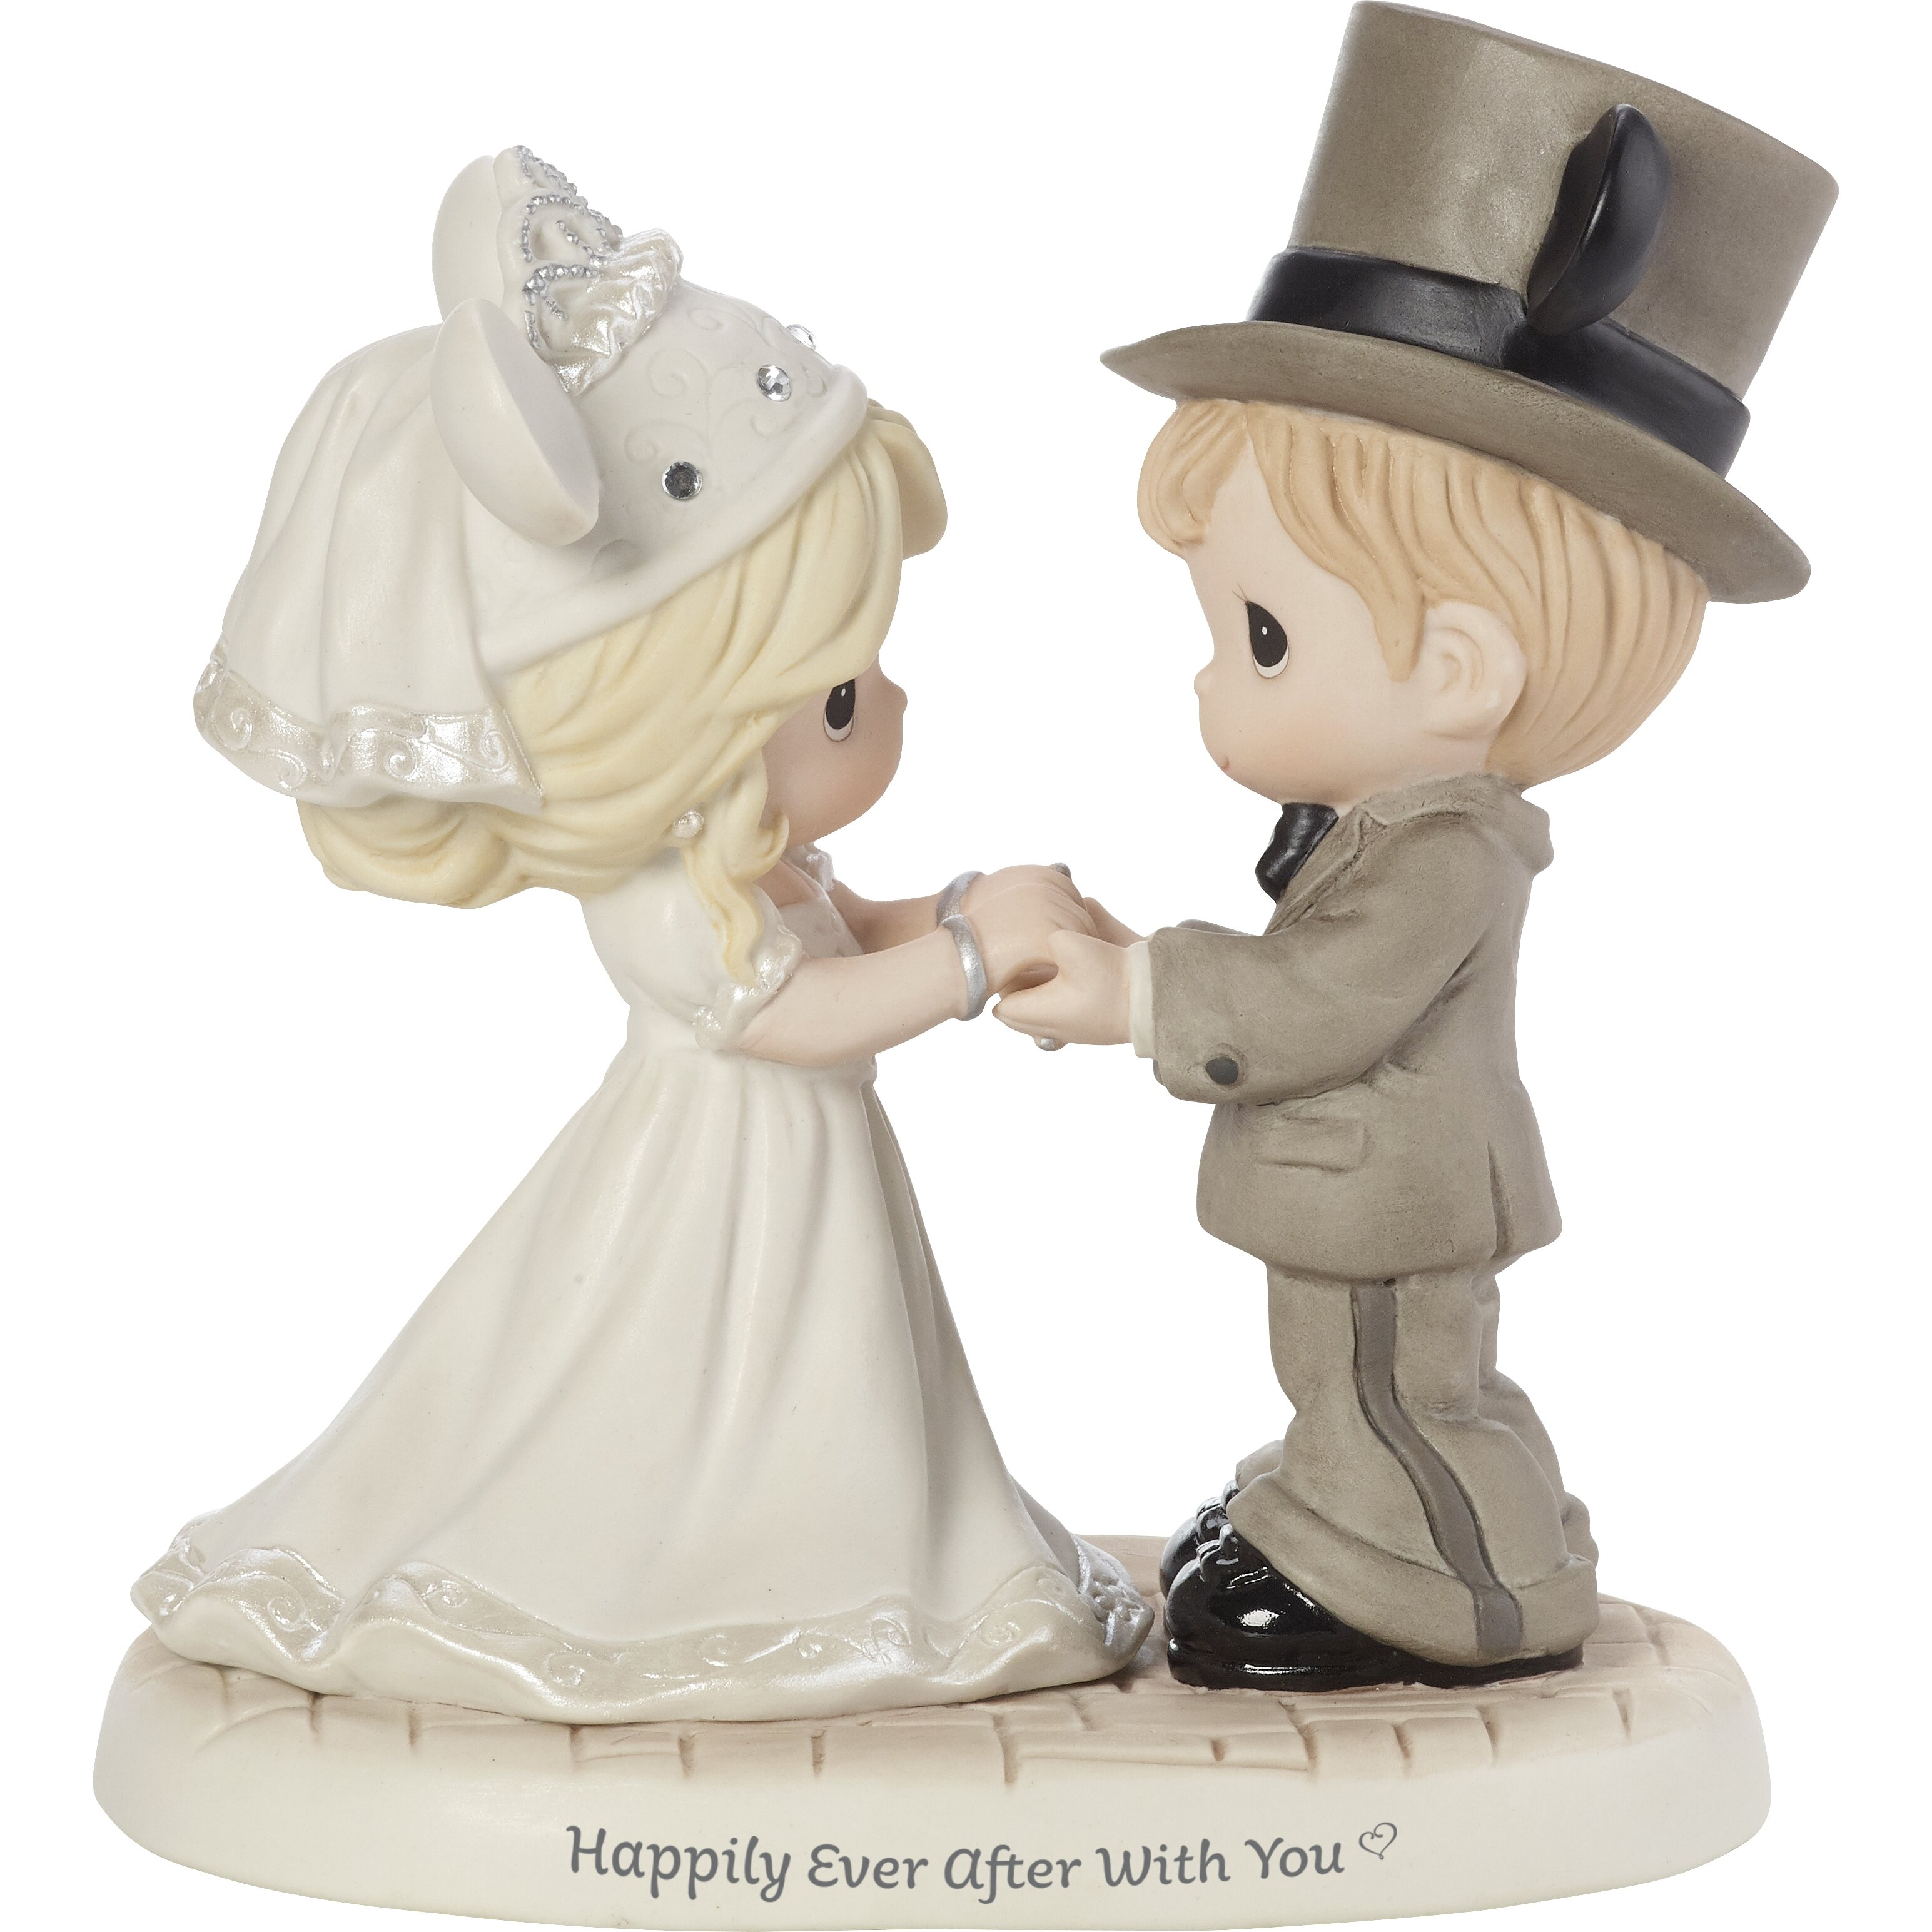 Precious Moments Disney Showcase Happily Ever After With You Wedding Couple Porcelain Figurine Wayfair